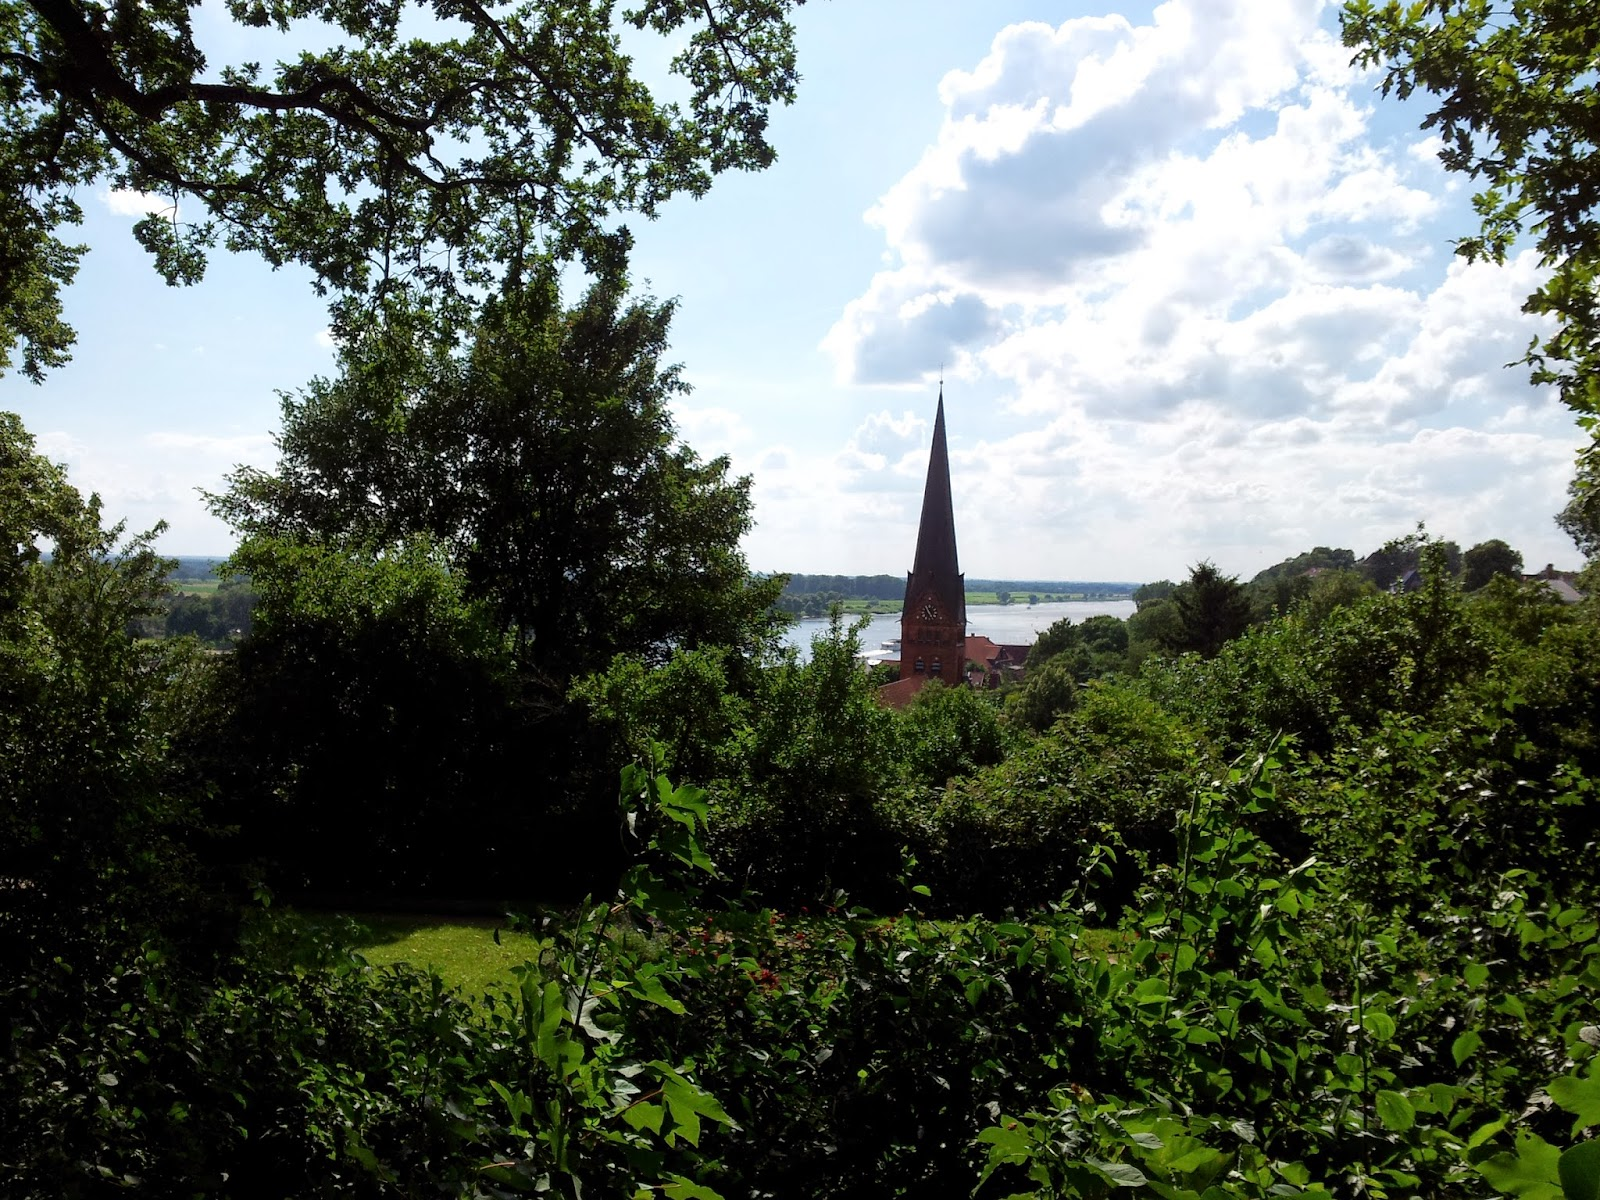 view from Lauenburg castle tower